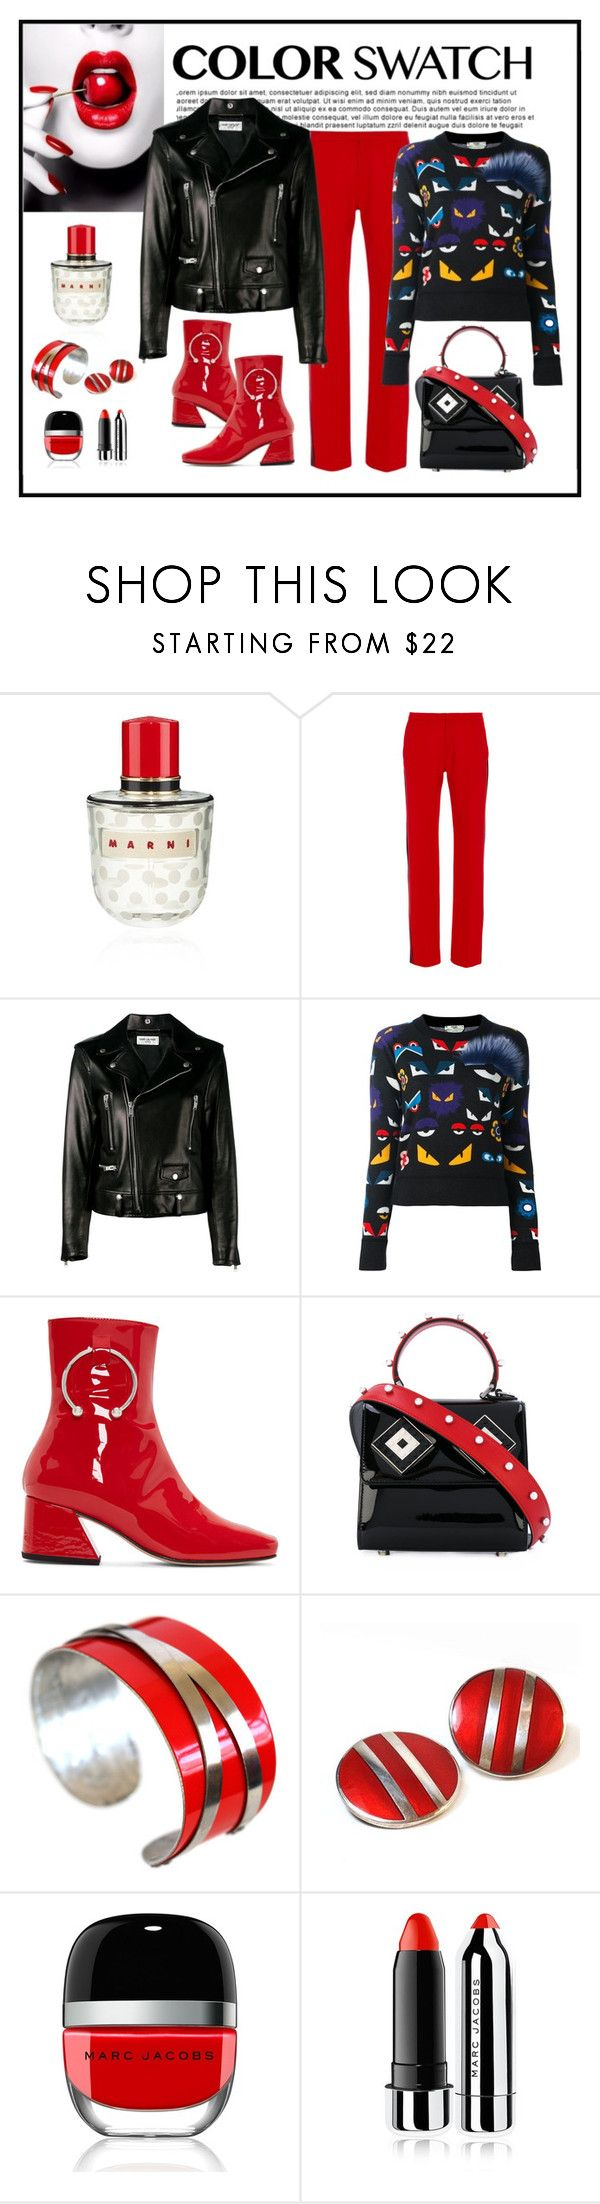 """Fendi Bugs Sweater Look"" by romaboots-1 ❤ liked on Polyvore featuring Marni, Clover Canyon, Yves Saint Laurent, Fendi, Dorateymur, Les Petits Joueurs, Ferrari and Marc Jacobs"